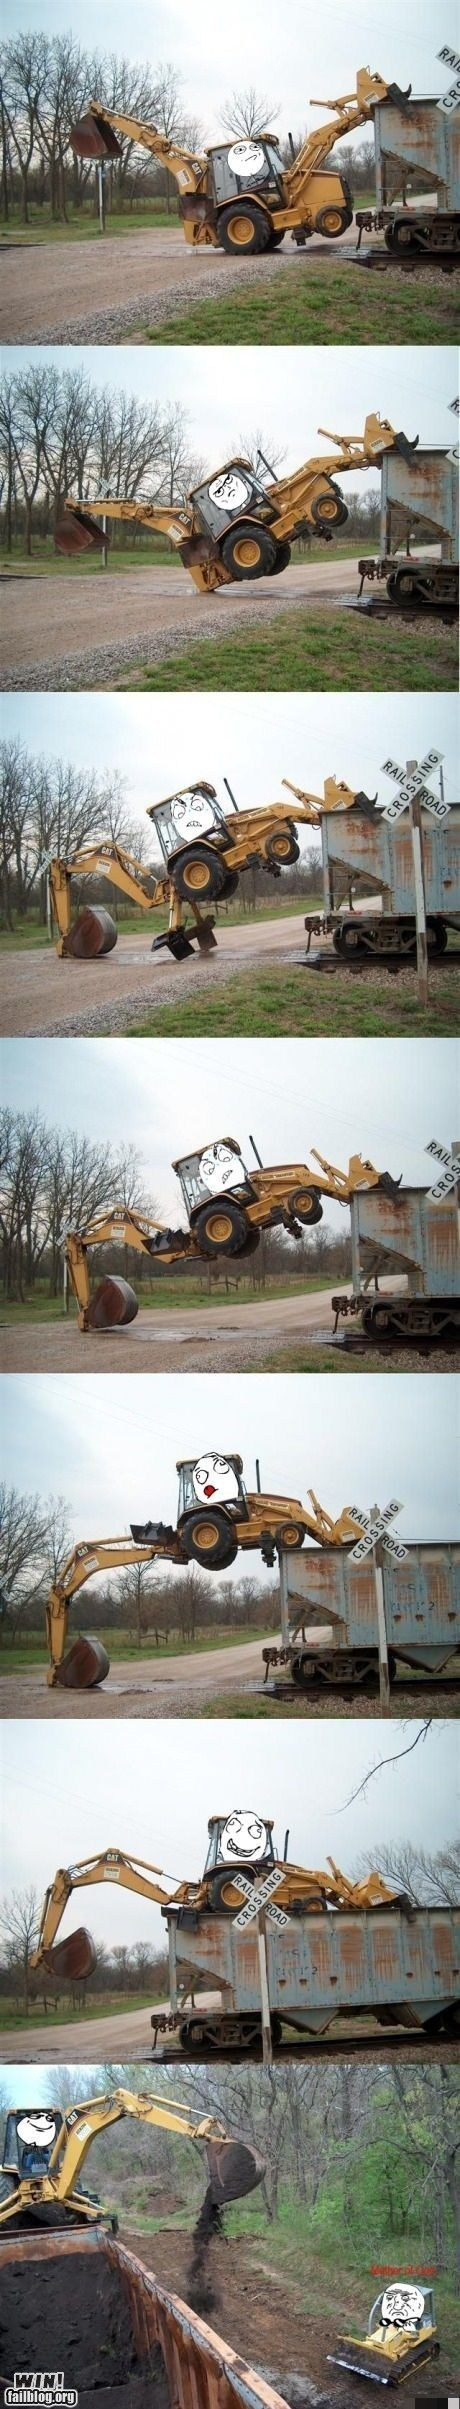 climbing construction equipment Like a Boss rage faces